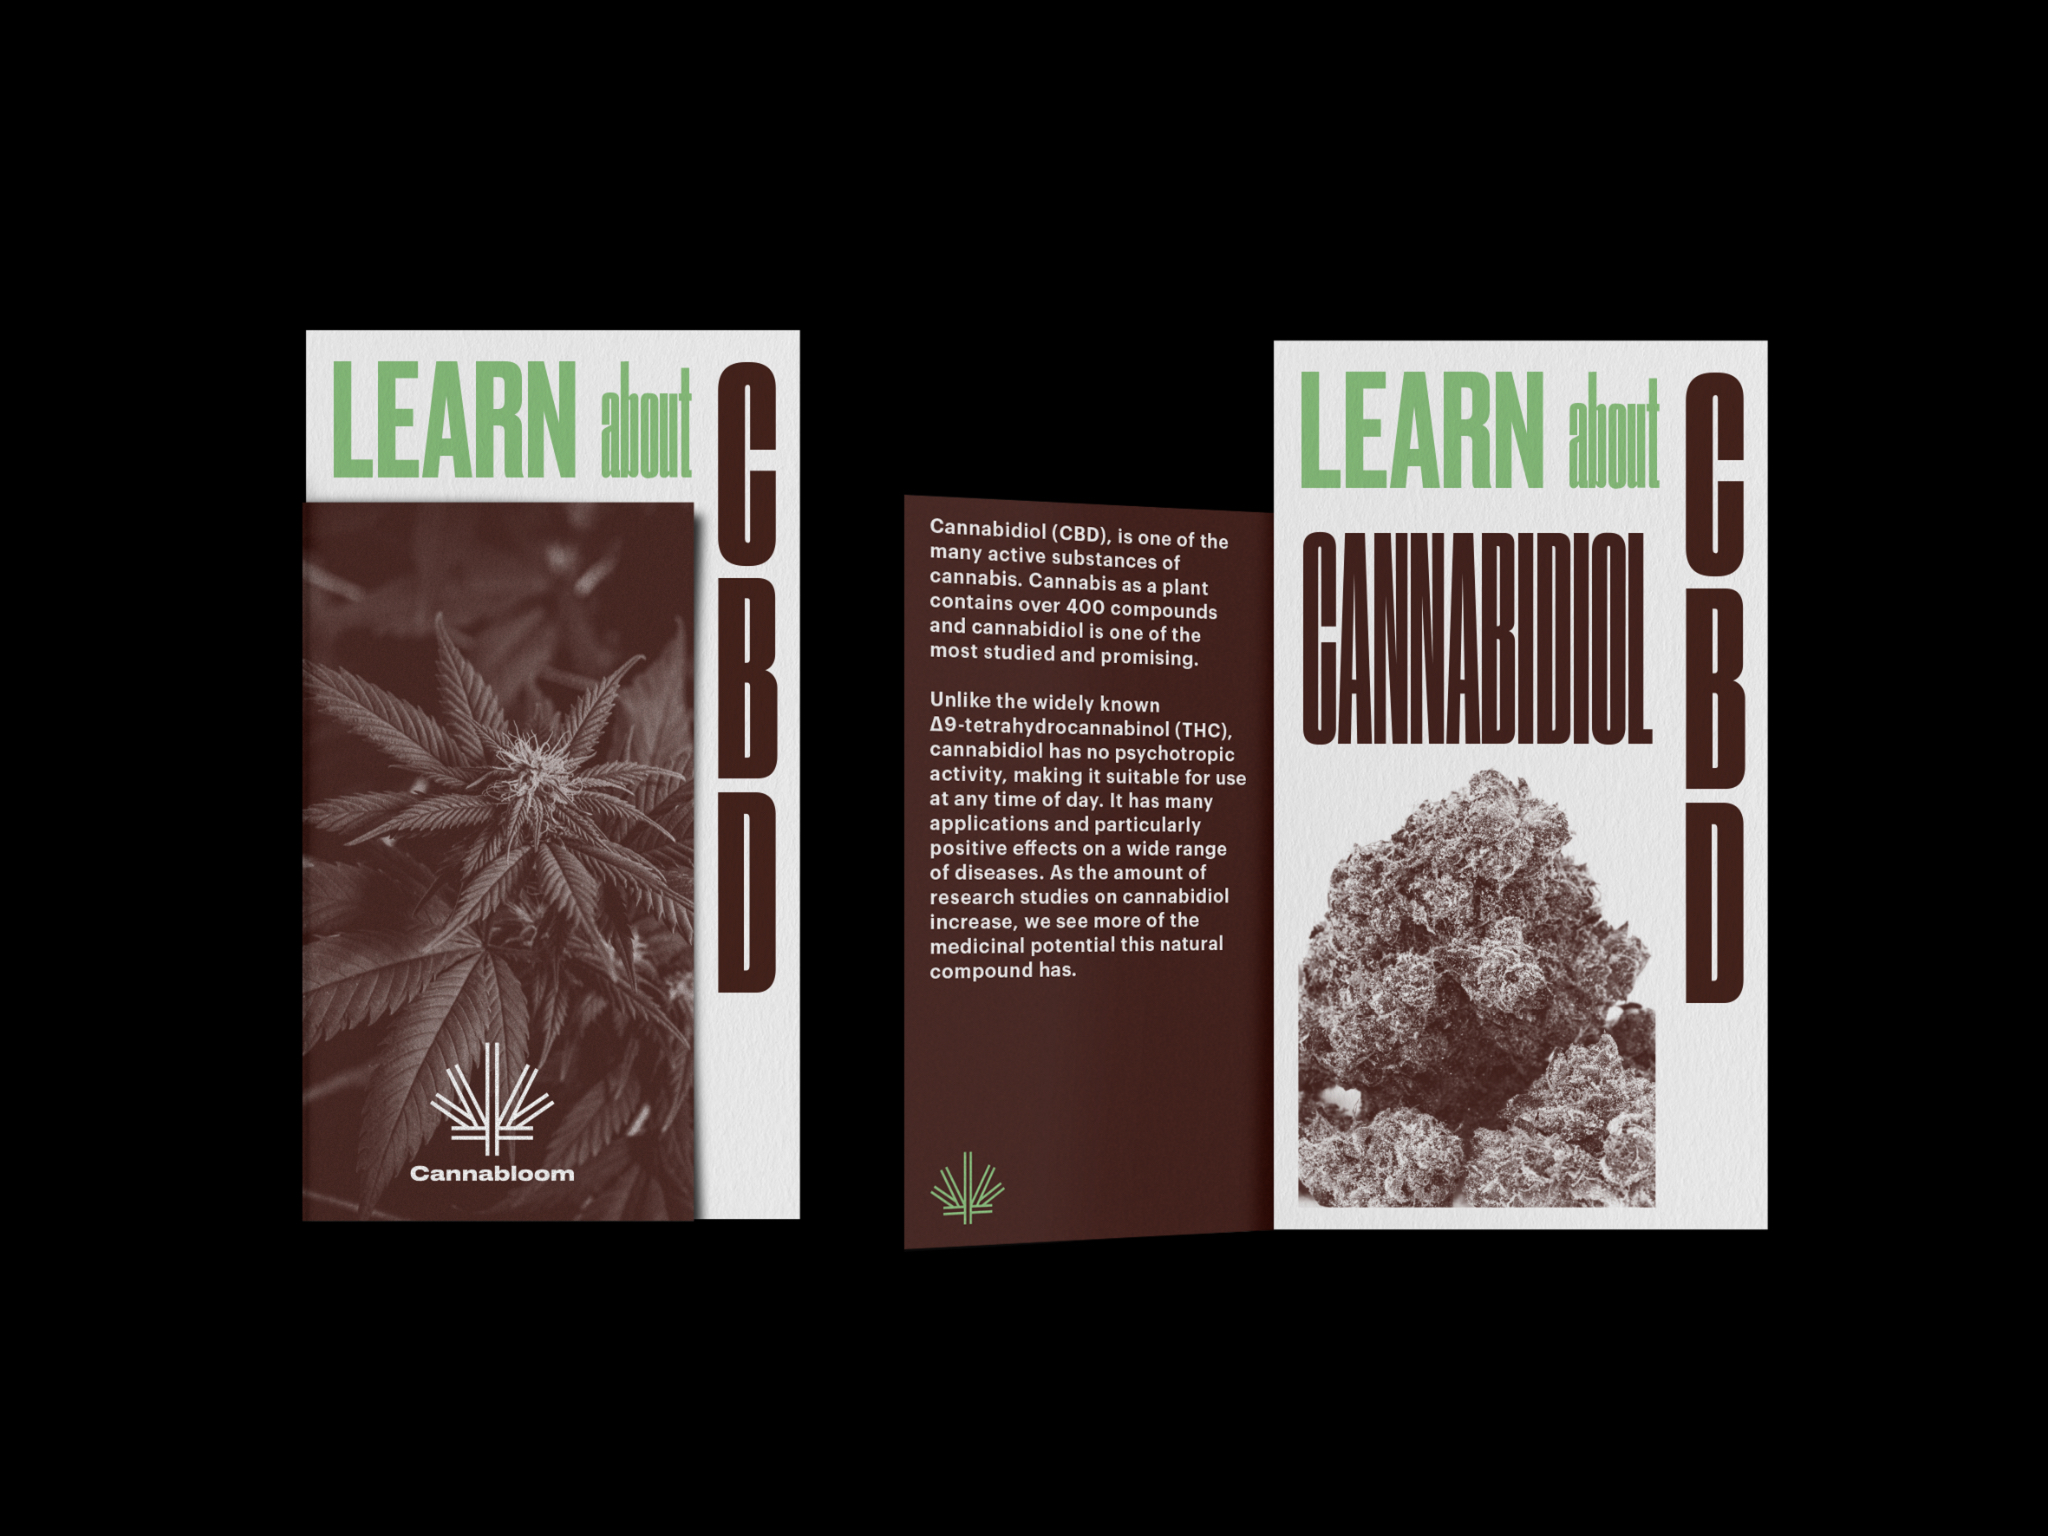 CANNABLOOM_STORE_ORIGHT_LEAFLET_2@2x